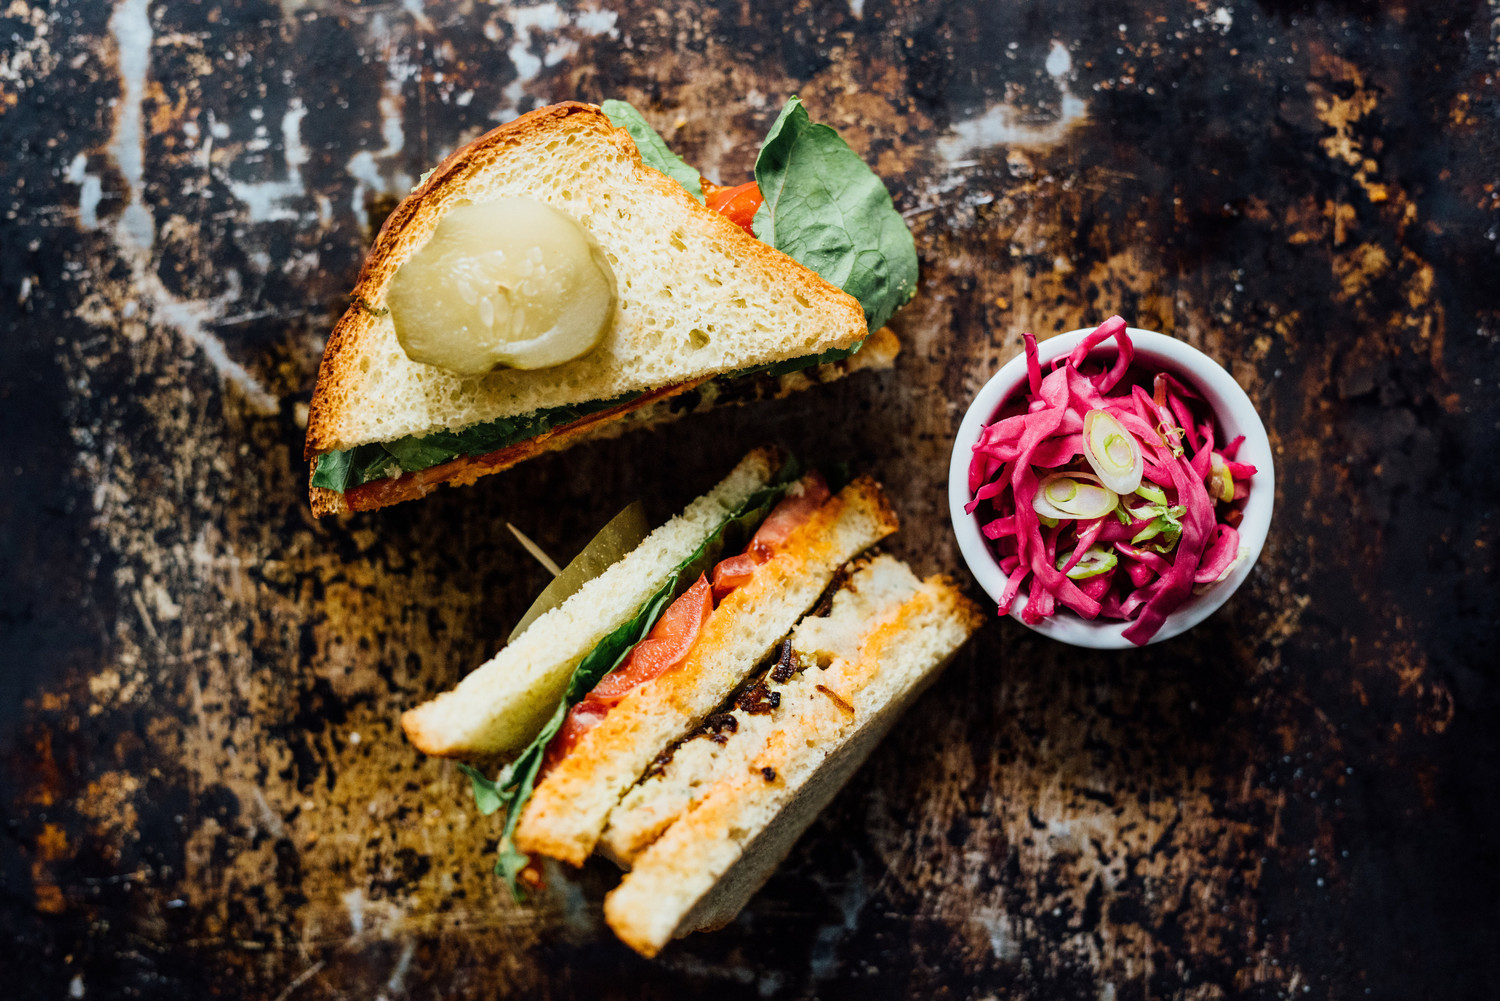 Gefilte fish sandwich